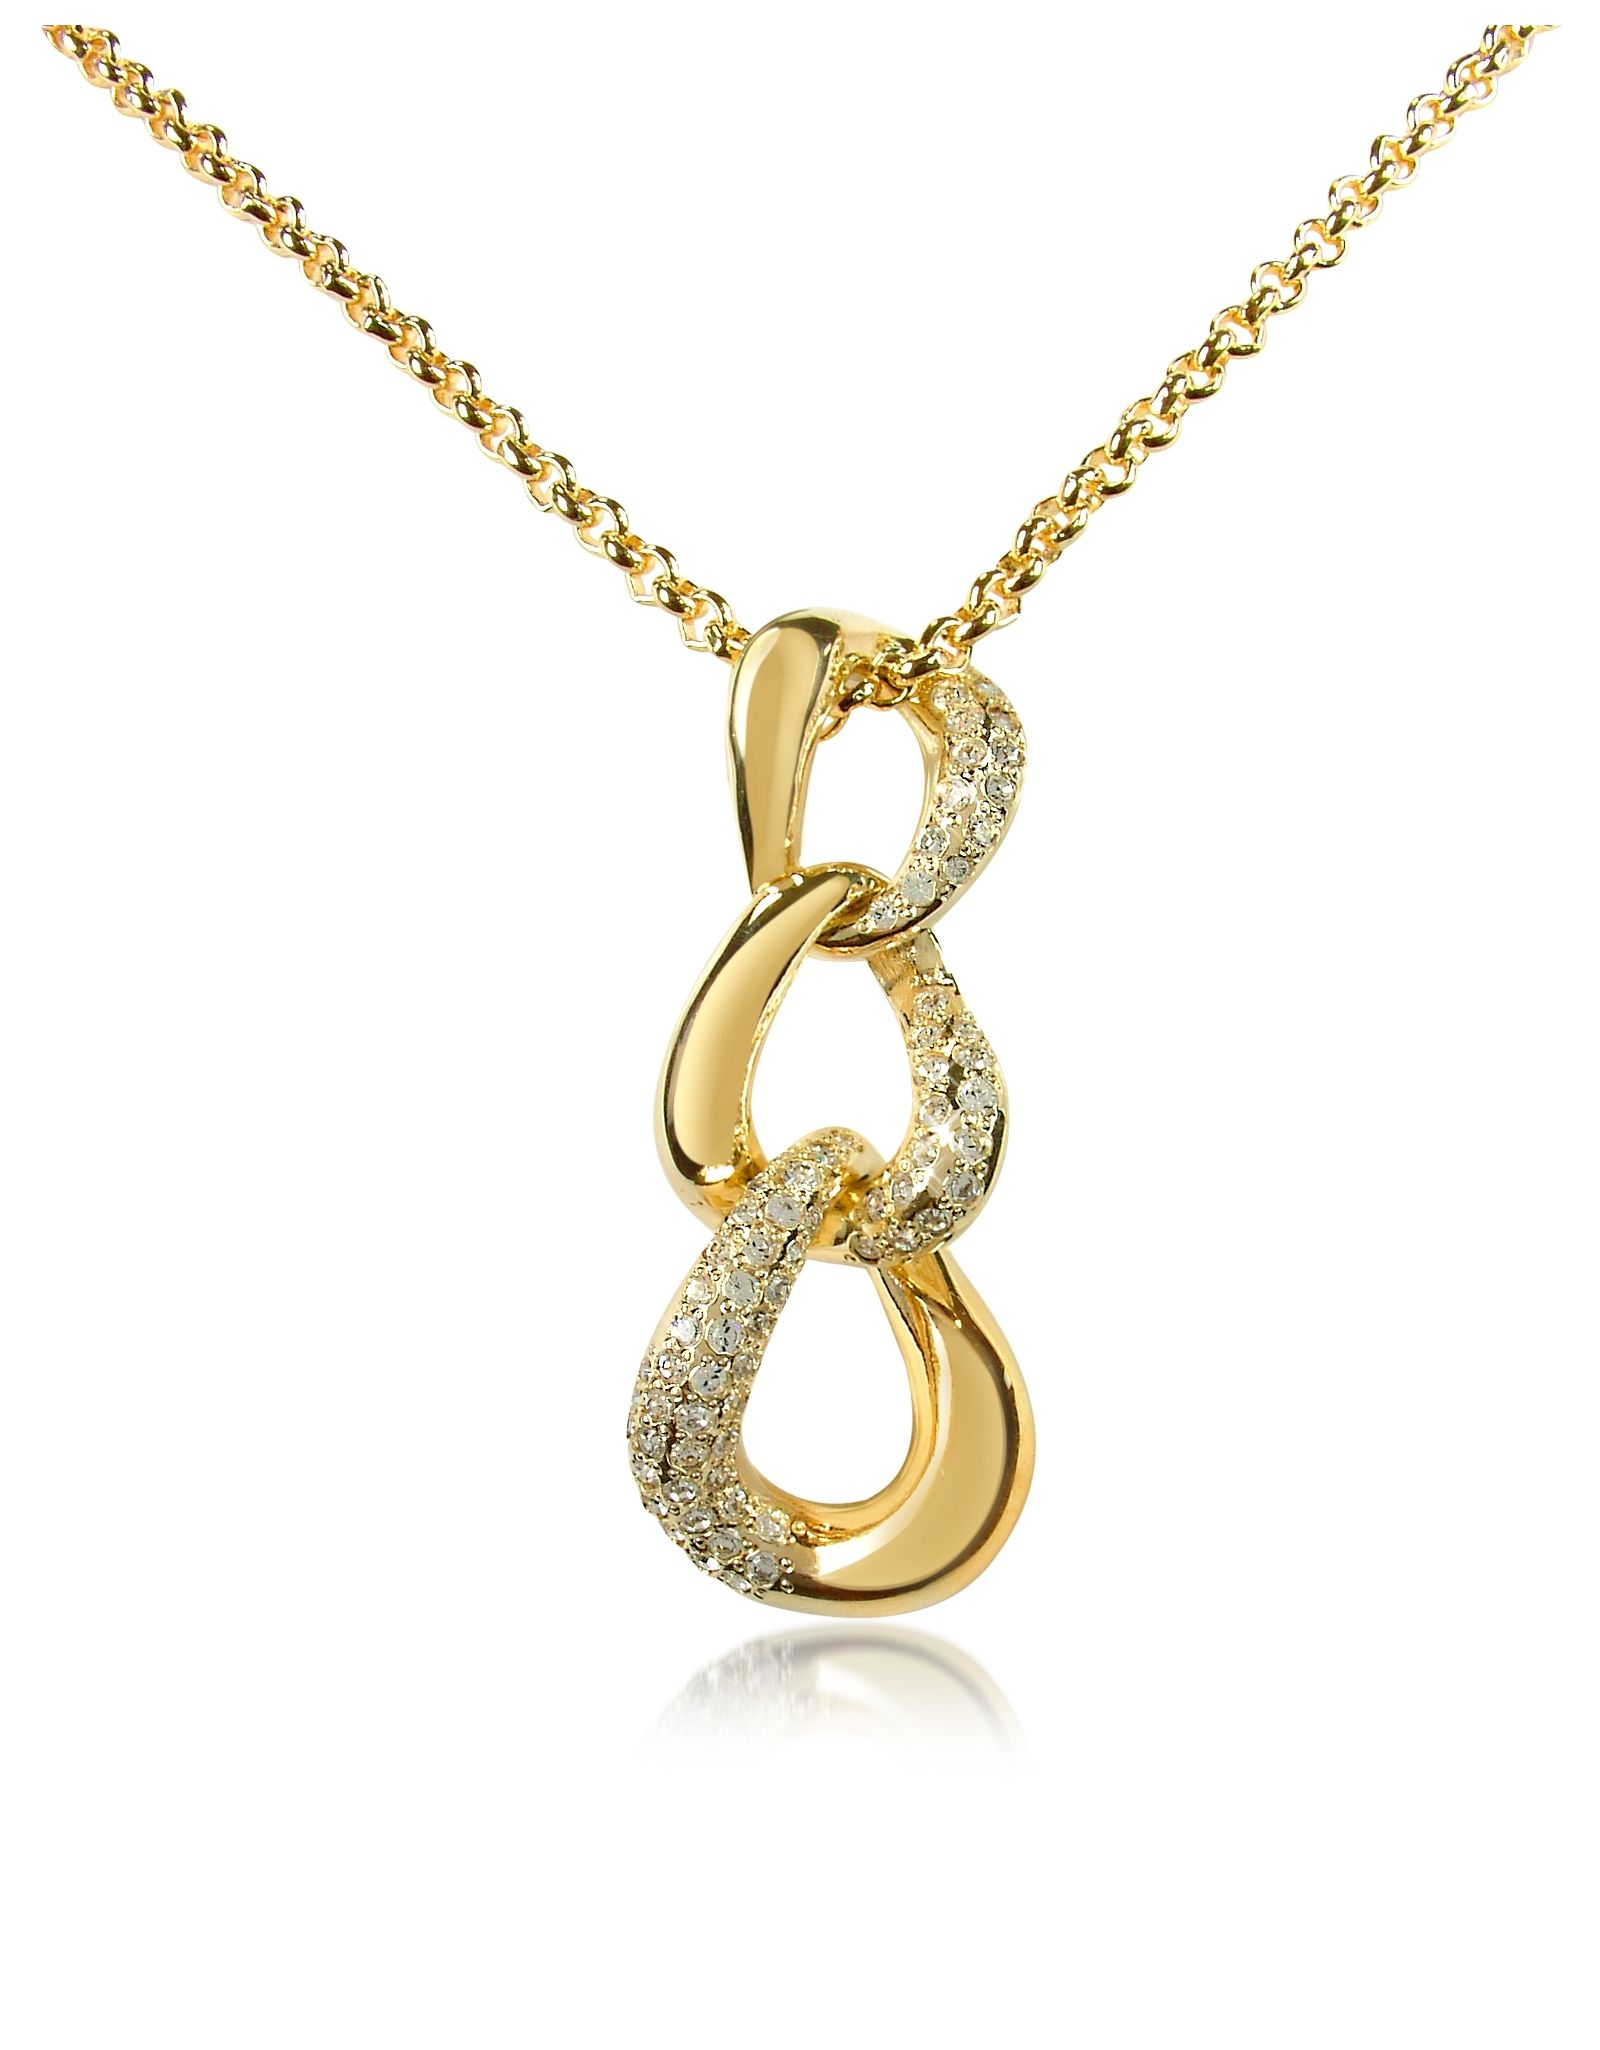 Az collectionus goldplated linear necklace features a rounded